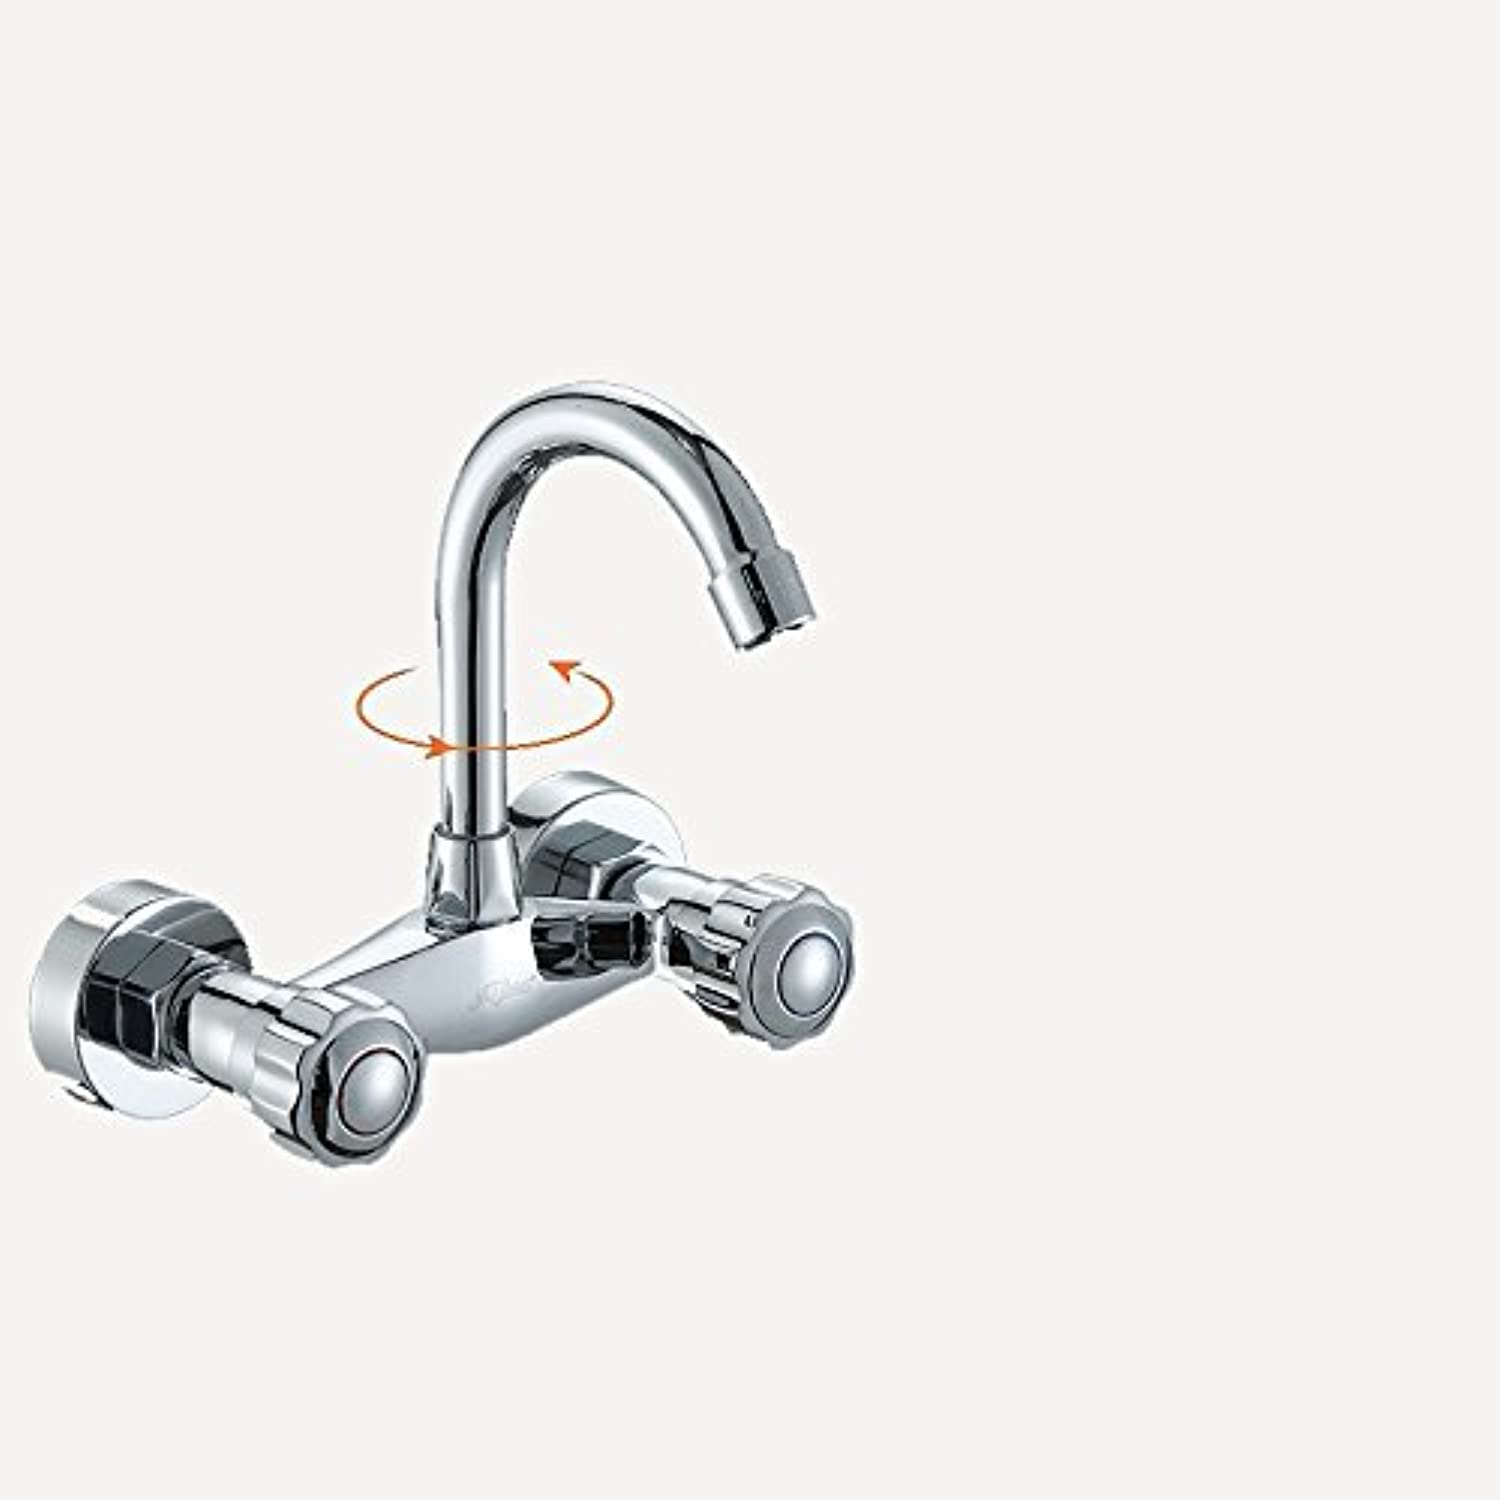 DYR Faucet Kitchen Faucets in the Wall Balcony Faucet Hot and Cold All Copper Double Handle Double Hole Faucet (color   1)